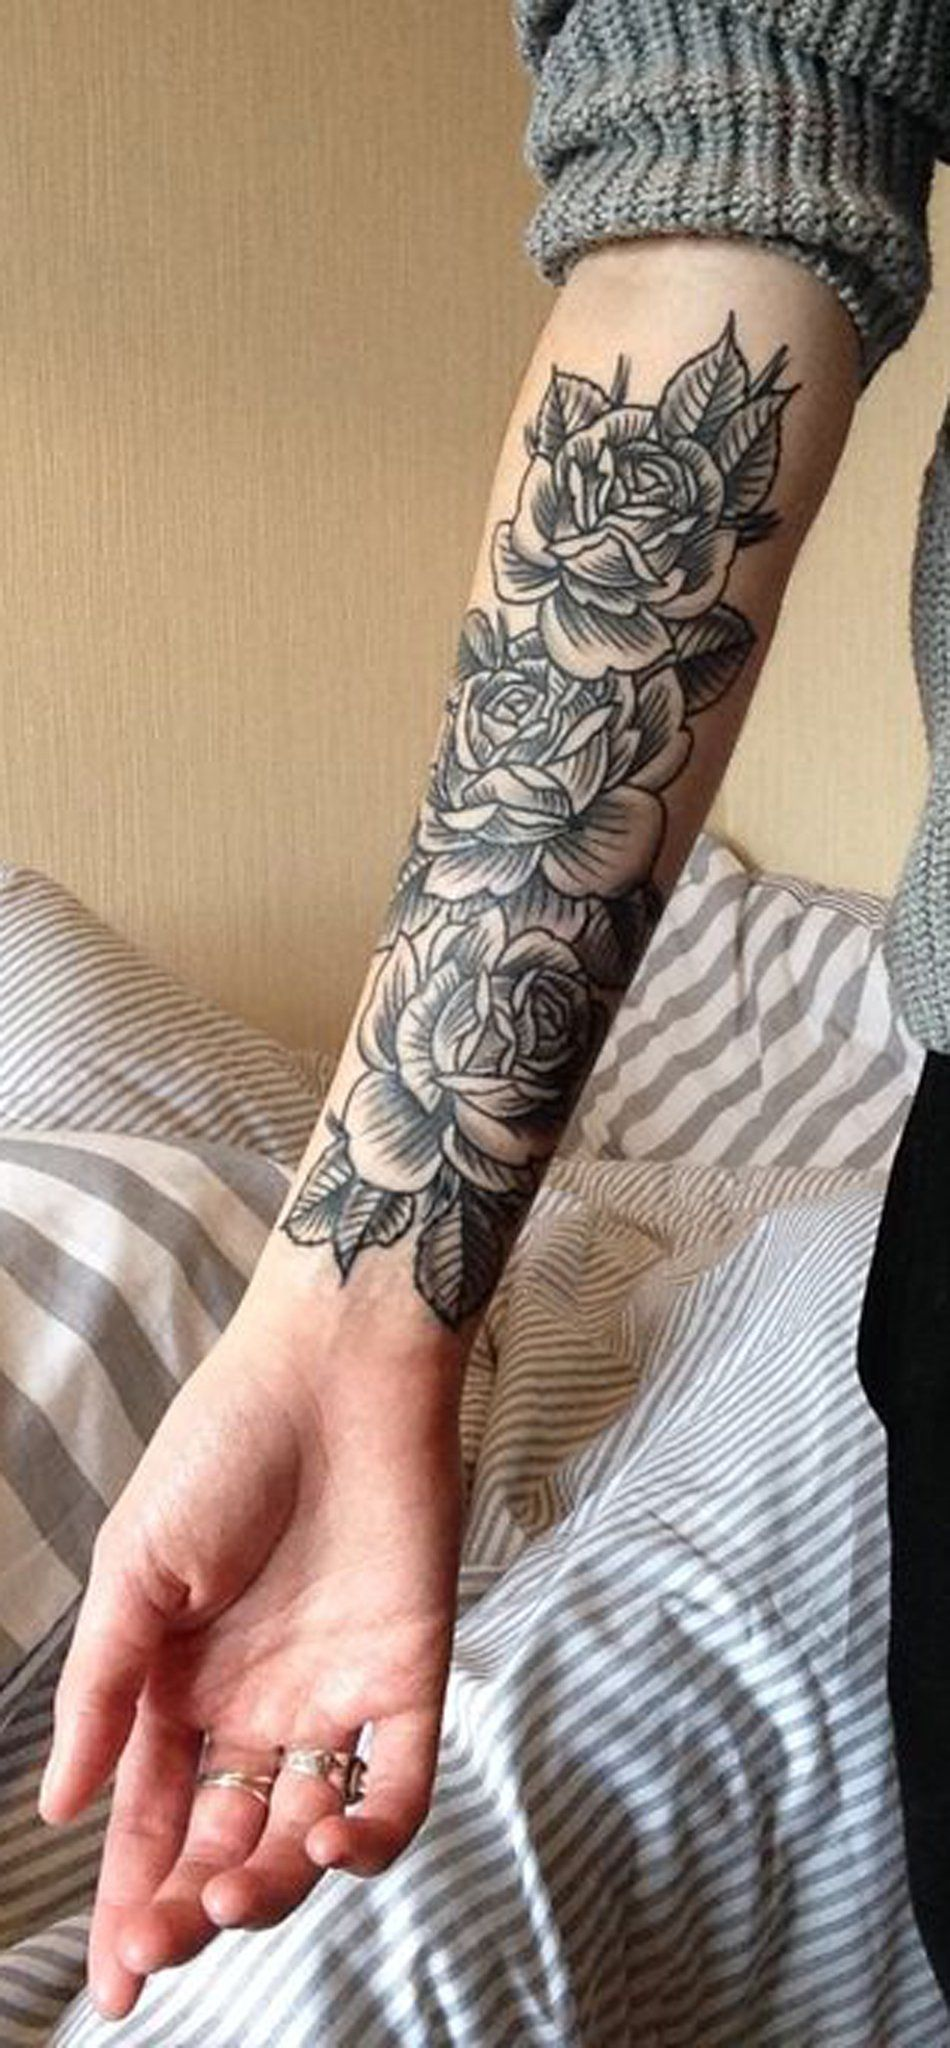 Black Rose Forearm Tattoo Ideas for Women Vintage